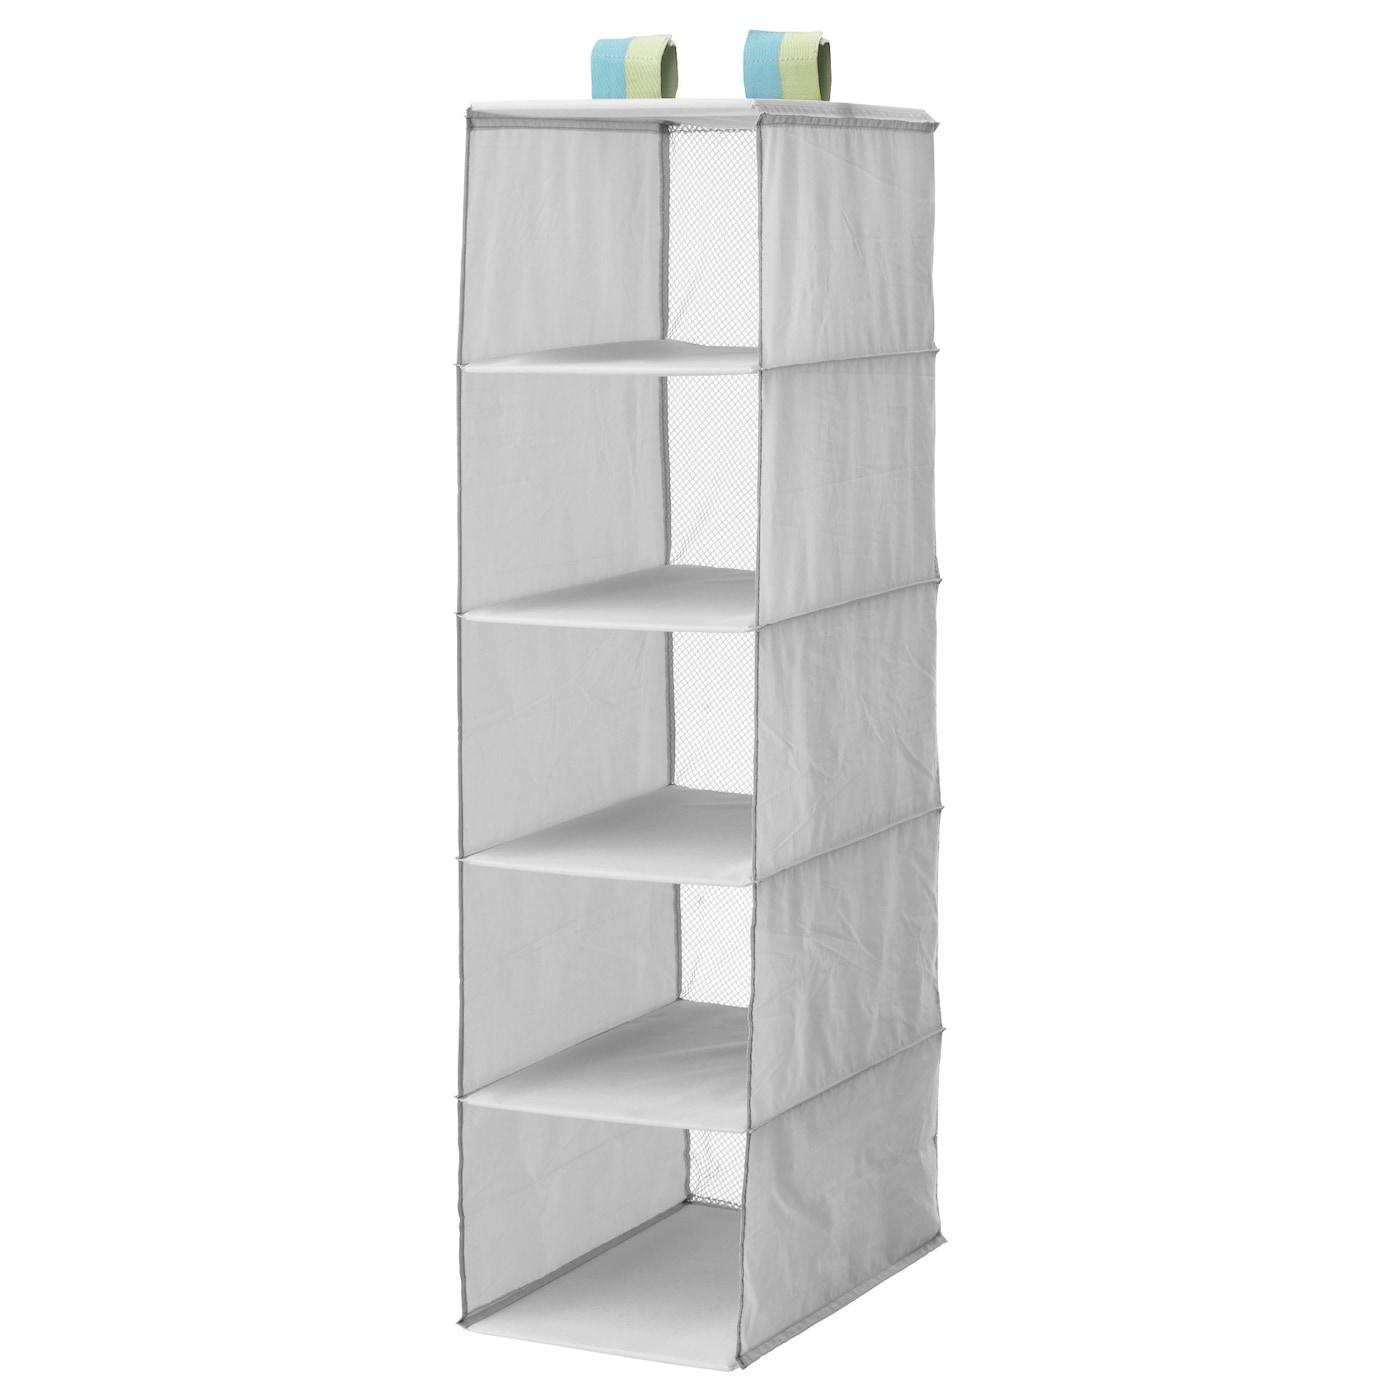 IKEA SLÄKTING storage with 5 compartments Can be folded to save space when not in use.